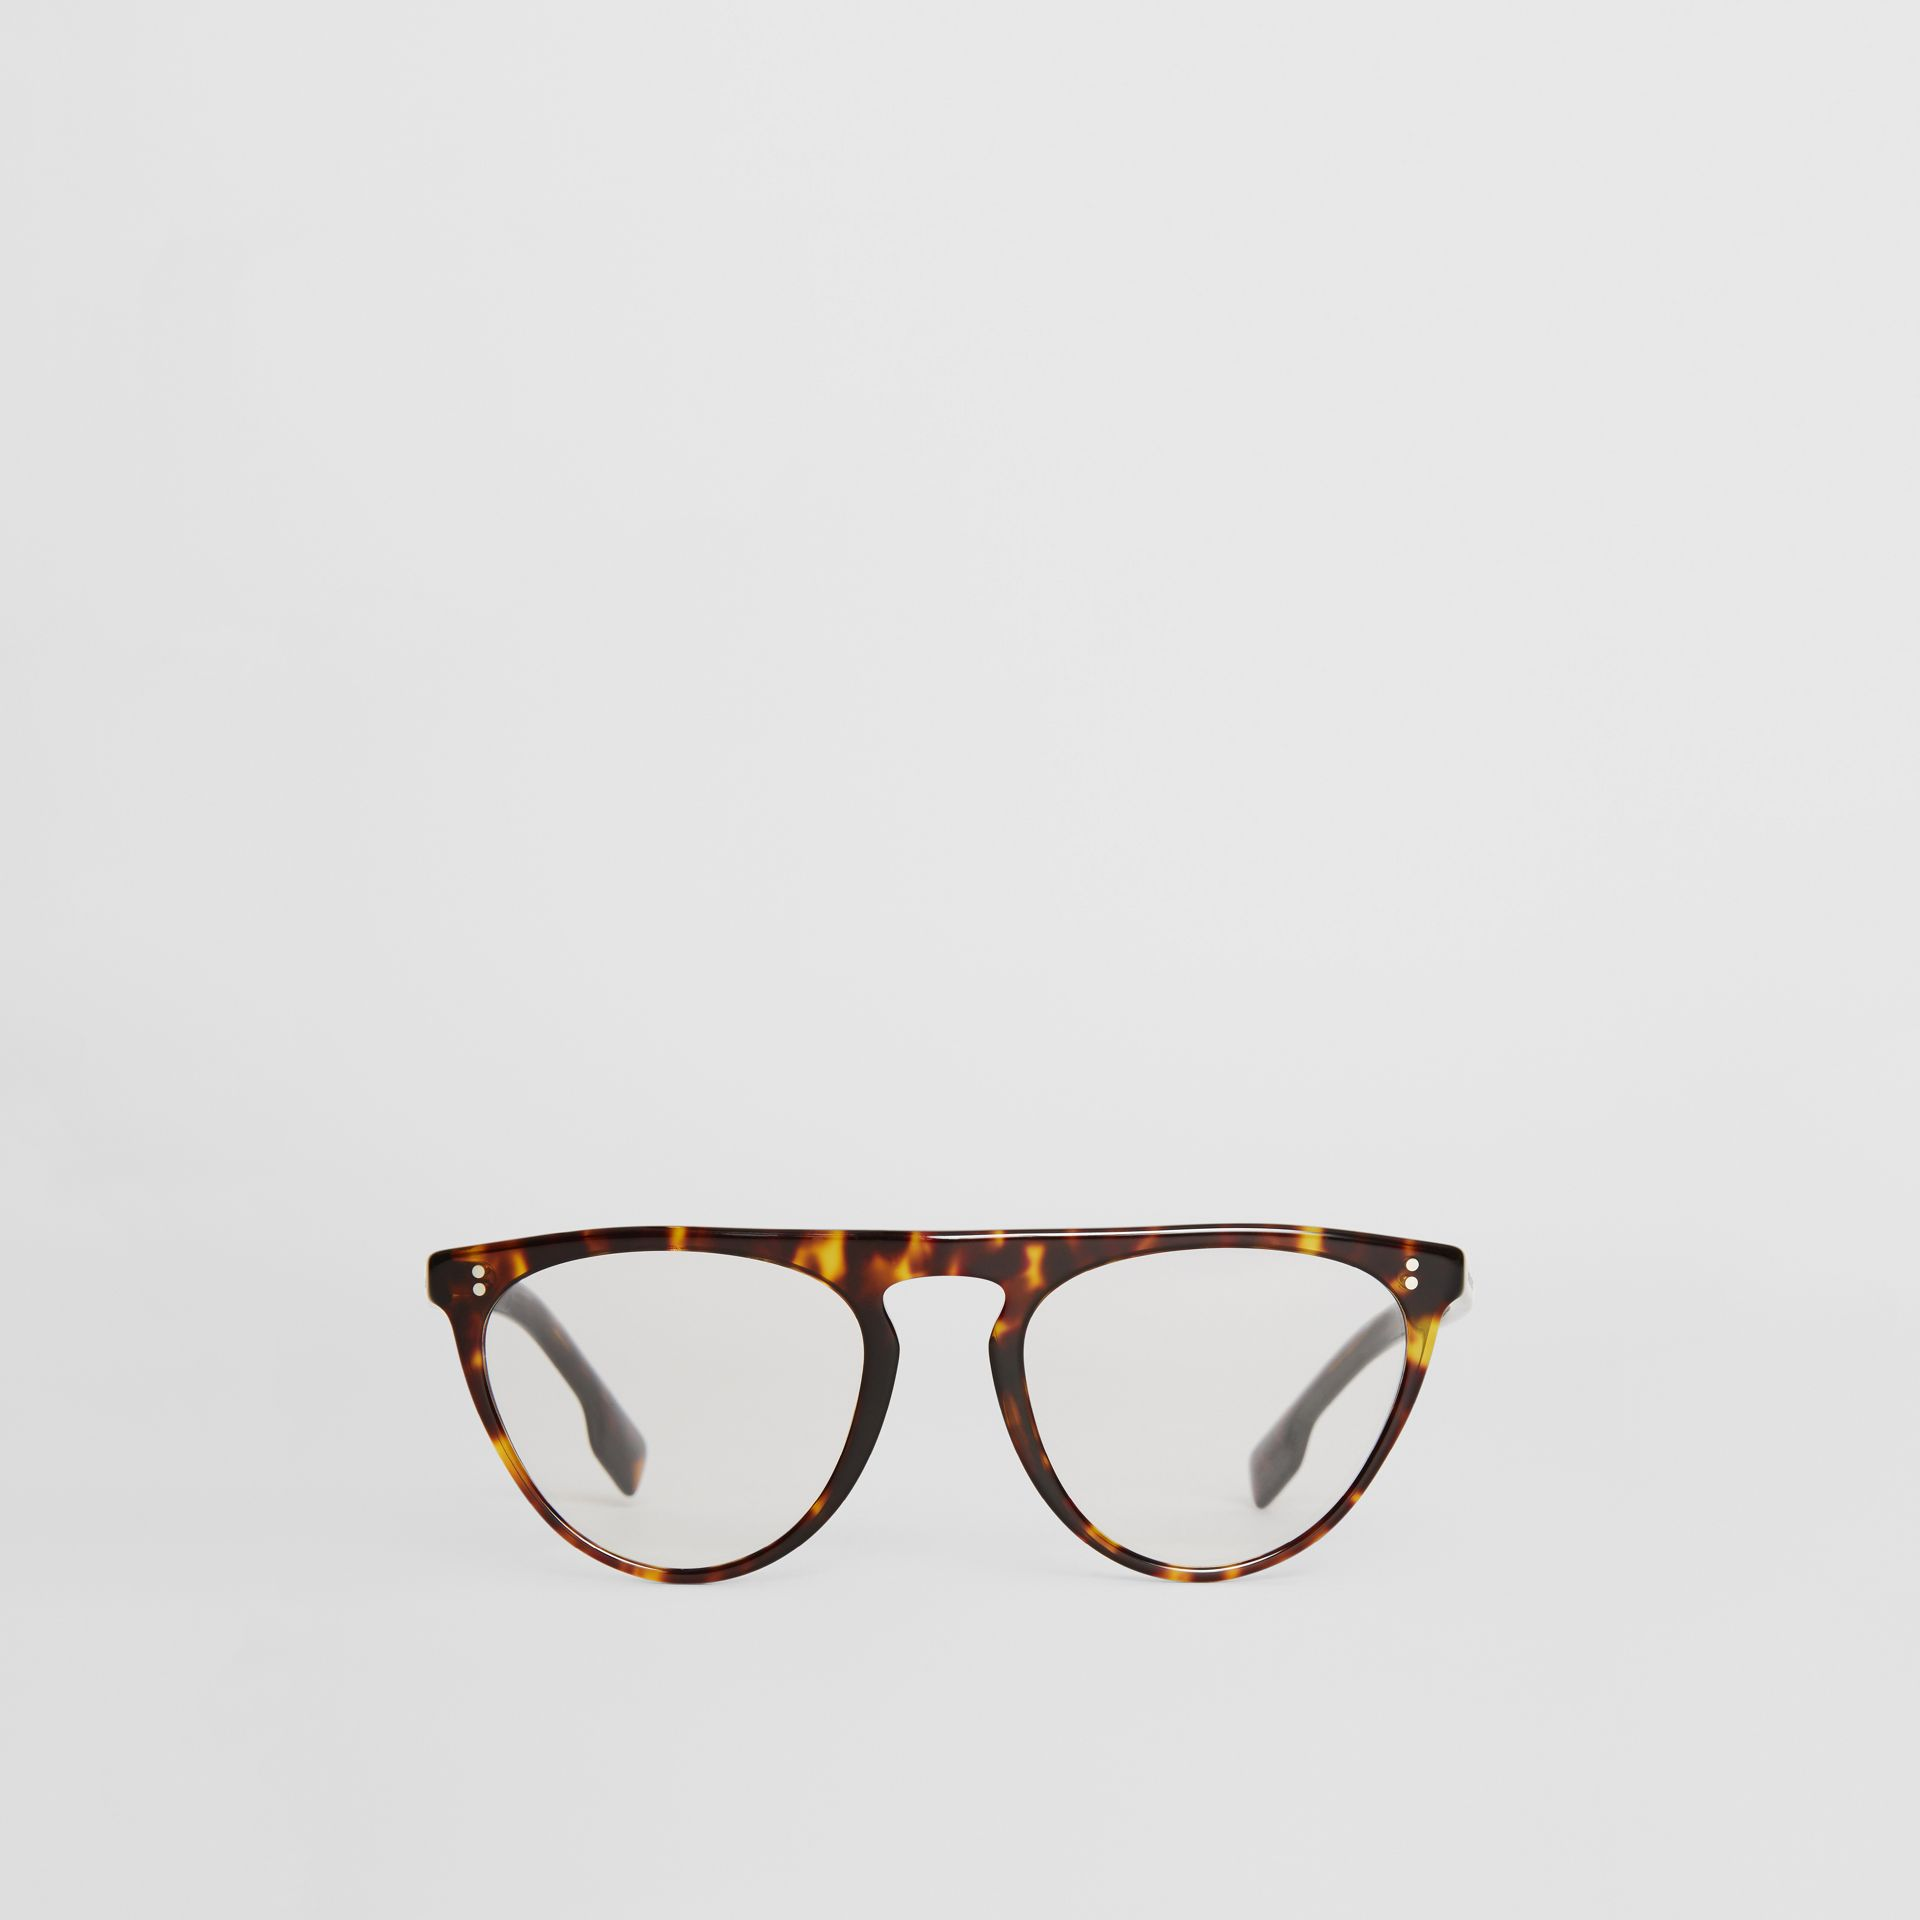 Keyhole D-shaped Optical Frames in Tortoise Shell - Men | Burberry - gallery image 0